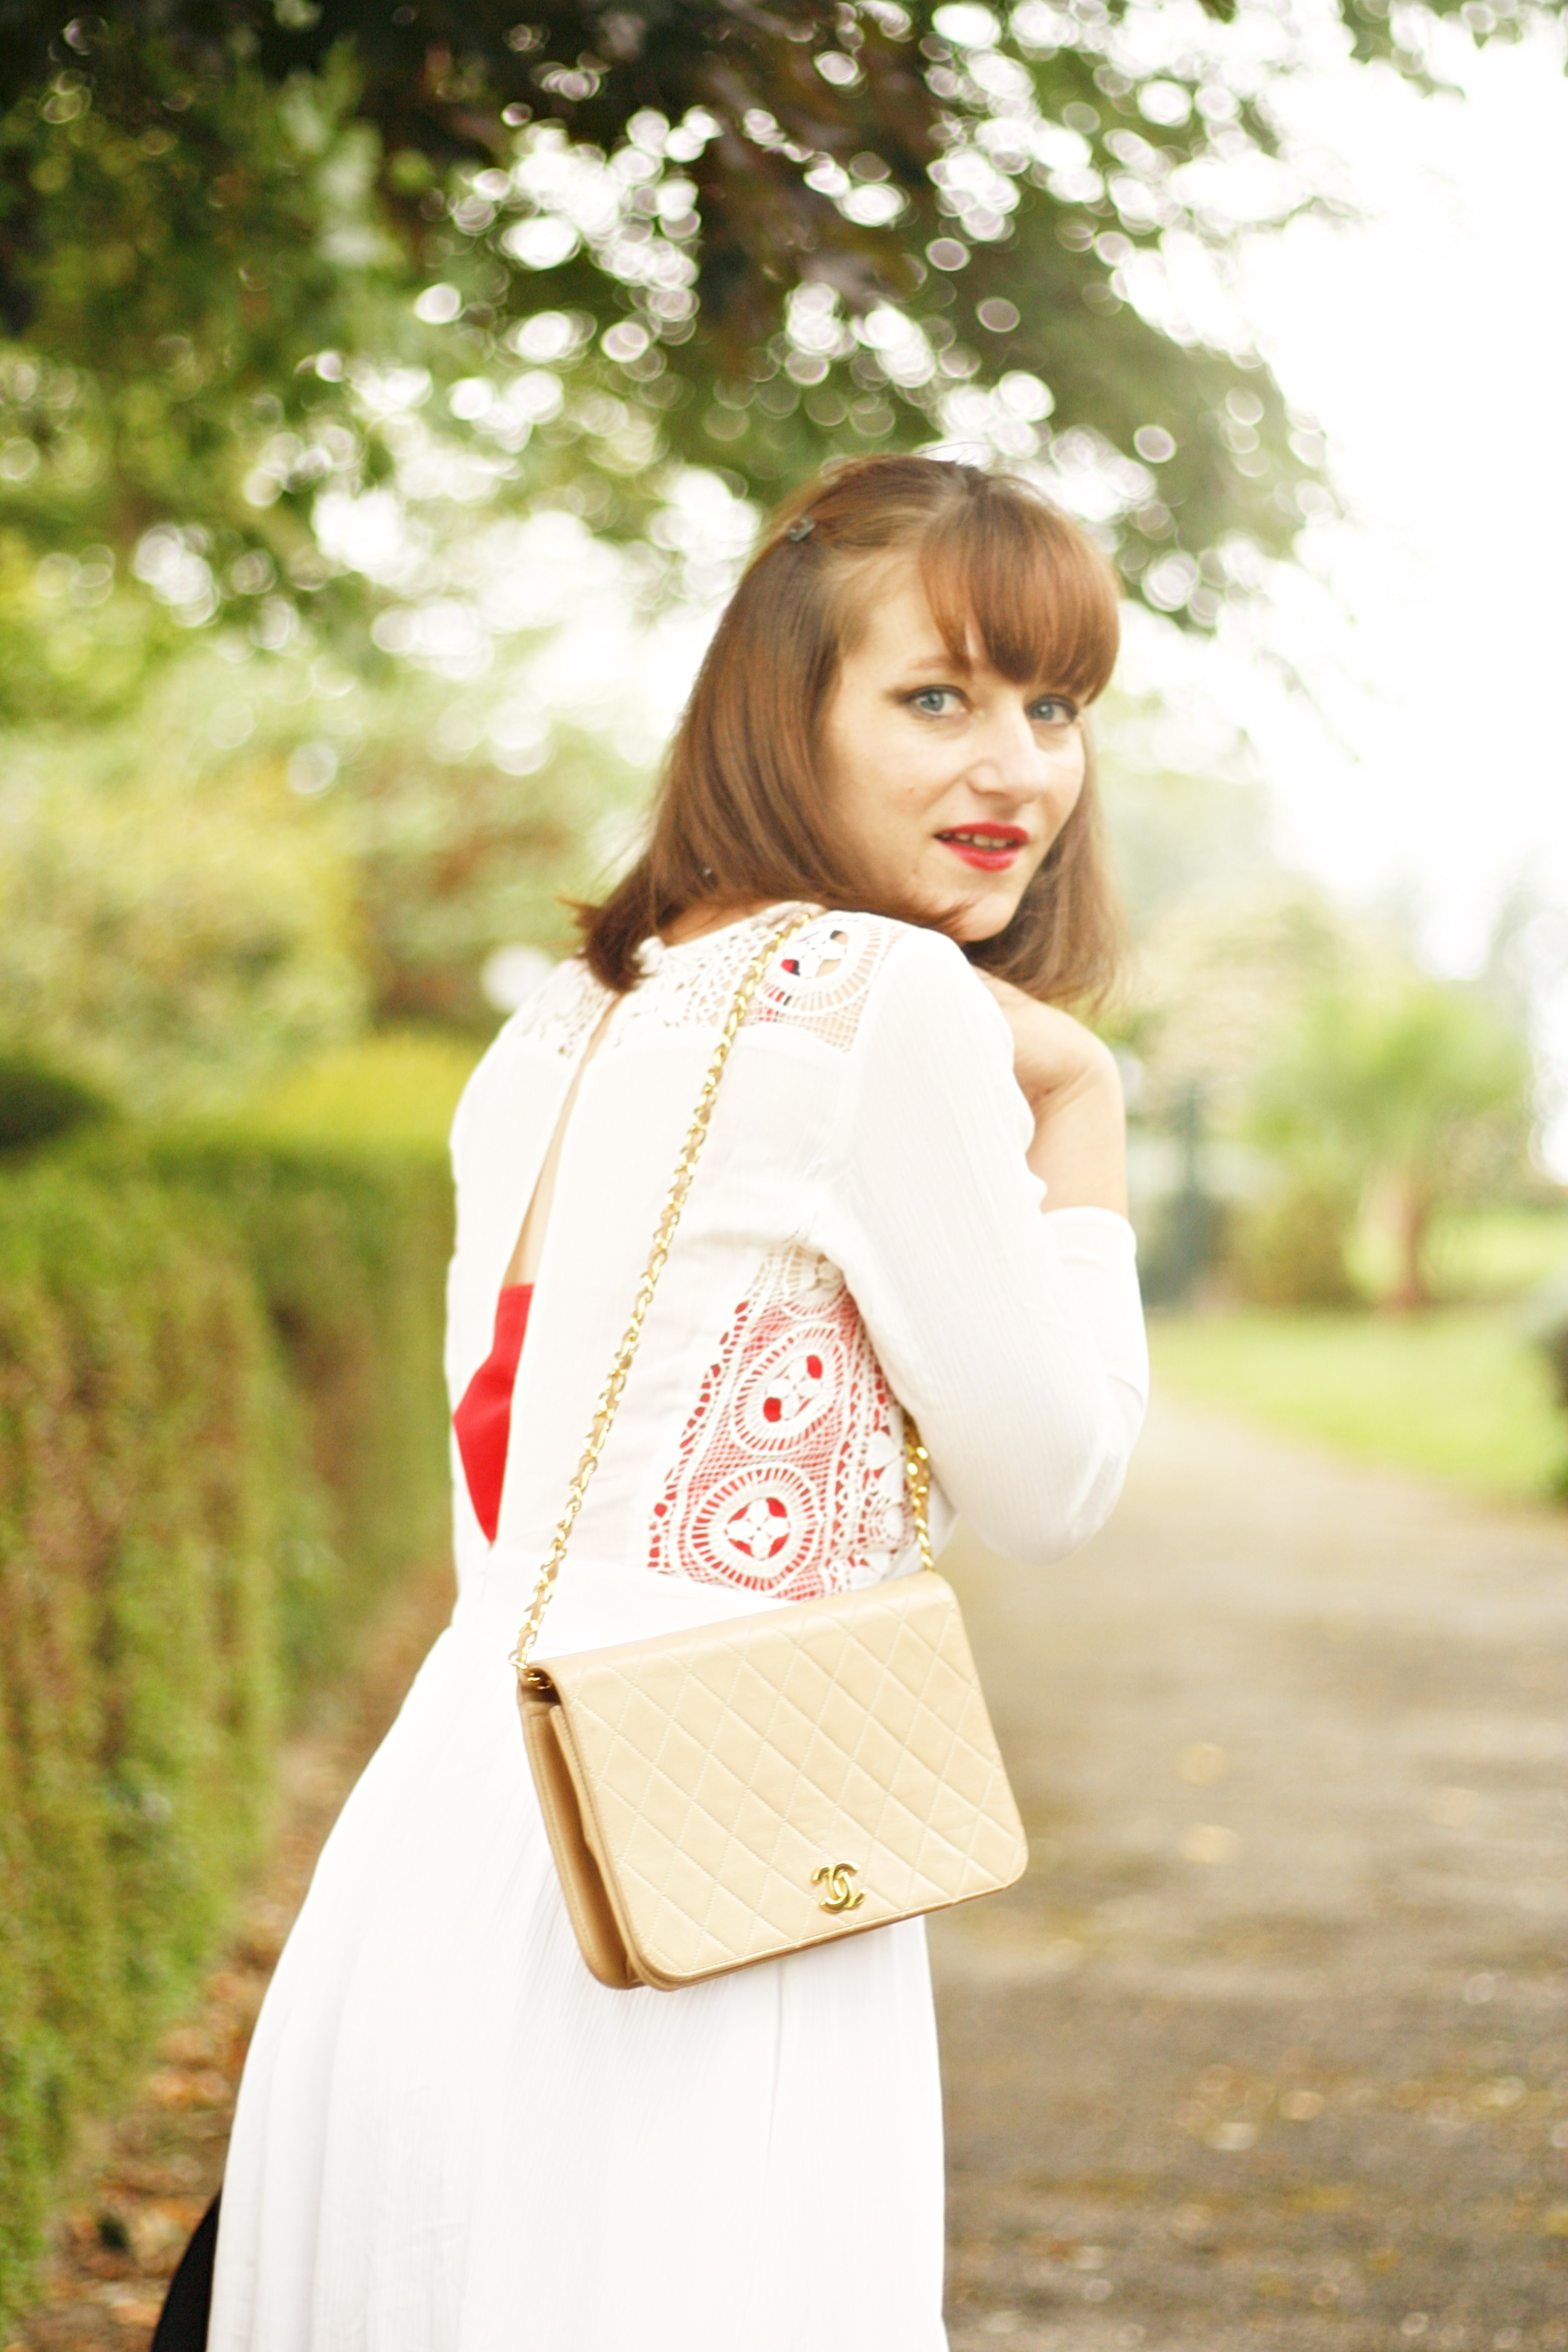 blog-mode-sac-chanel-vintage-chanel-vide-dressing-sac-chanel-mademoiselle-beige